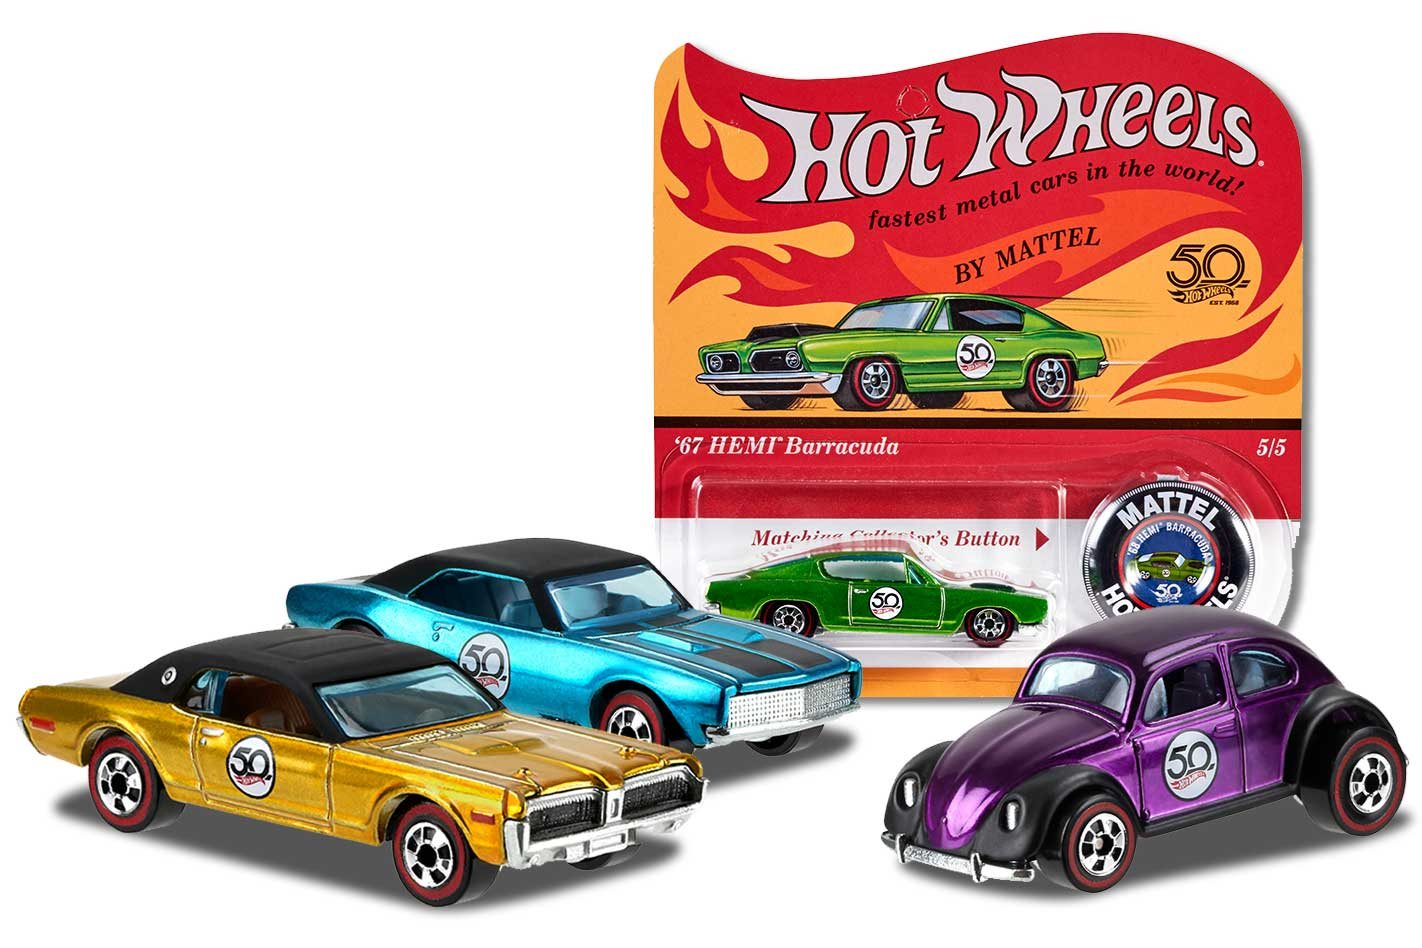 Hot Wheels Turns 50 Years Old Hotwheels Datsun 620 Red